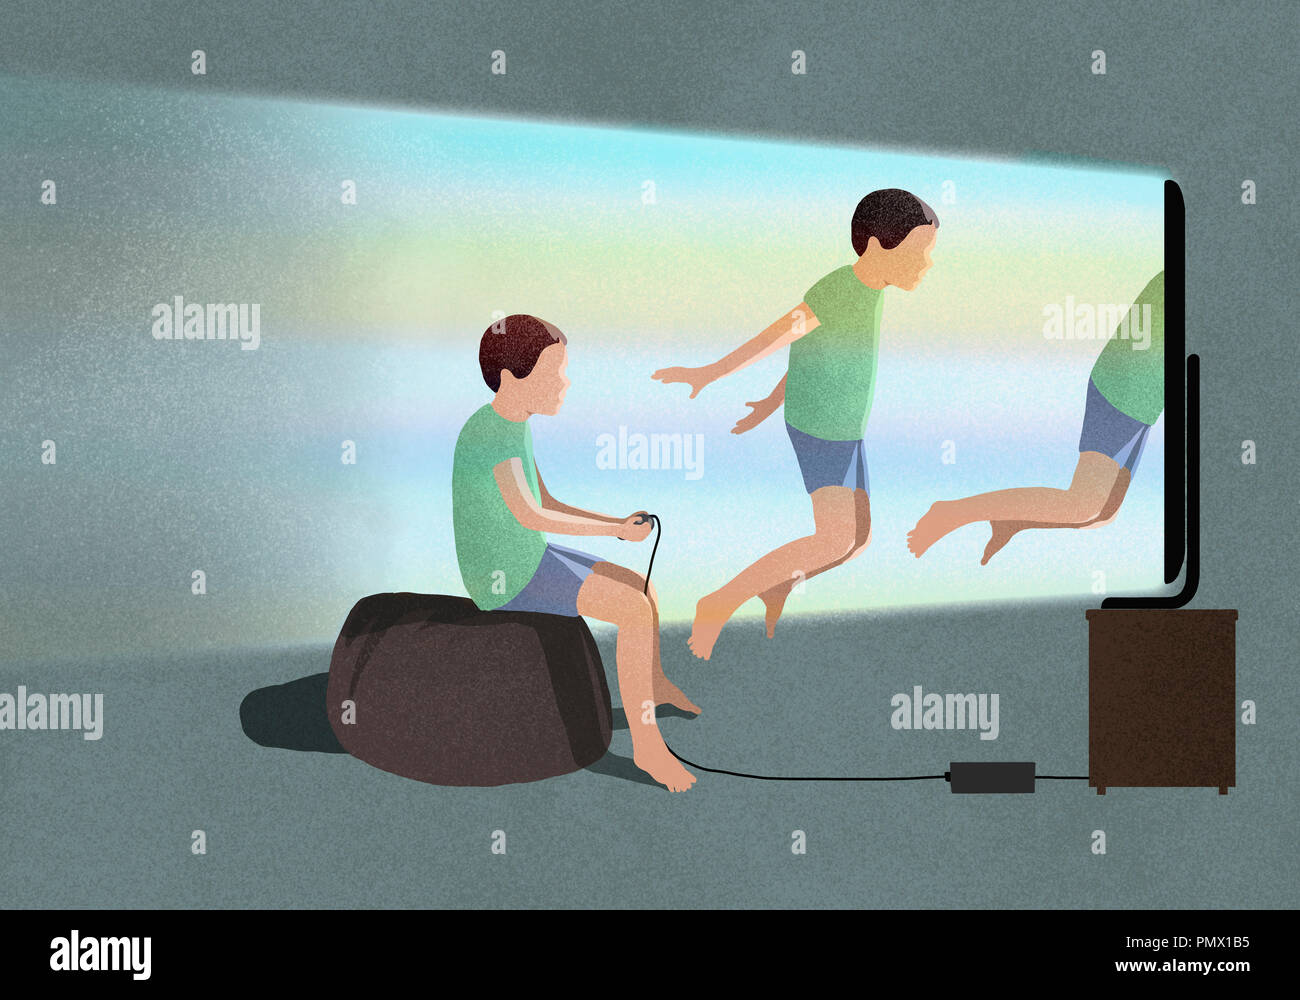 Boy playing virtual reality video game - Stock Image